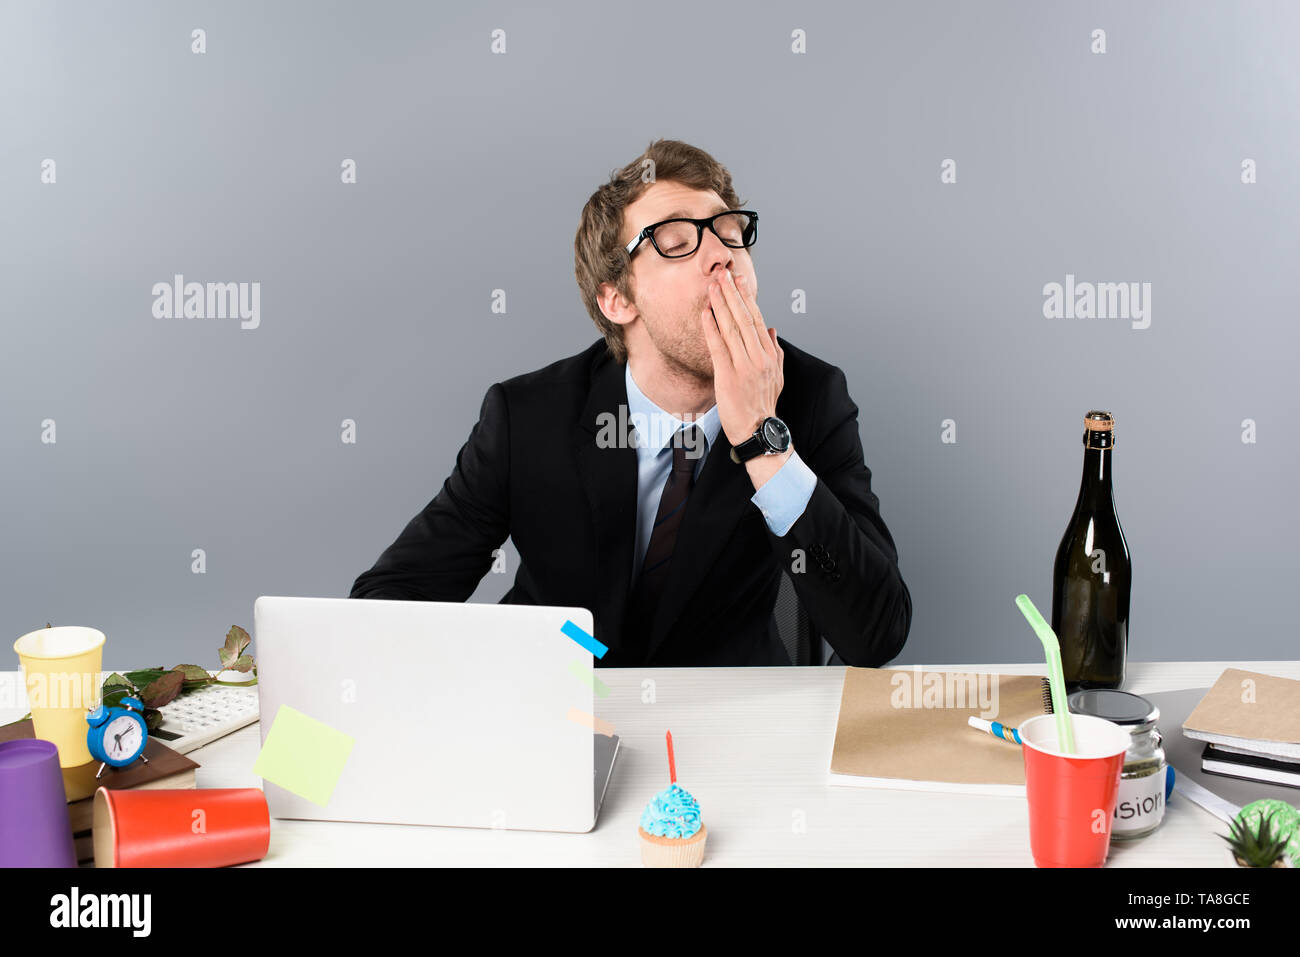 businessman yawing at workplace near cupcake and paper cups isolated on grey - Stock Image